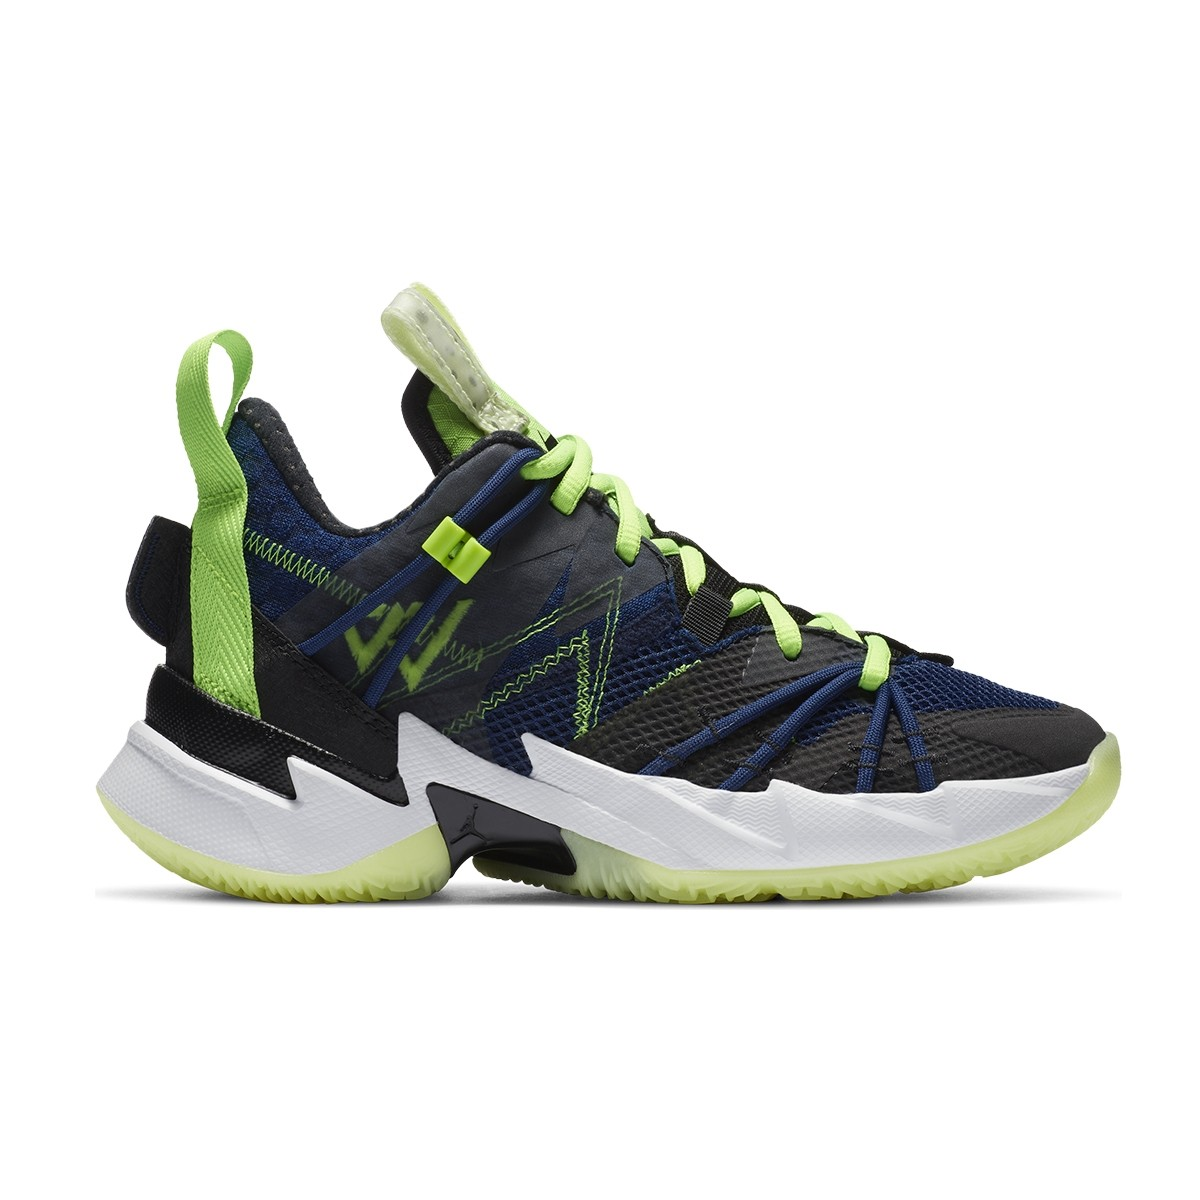 Jordan Why Not Zer0.3 SE Jr 'Navy & Volt'